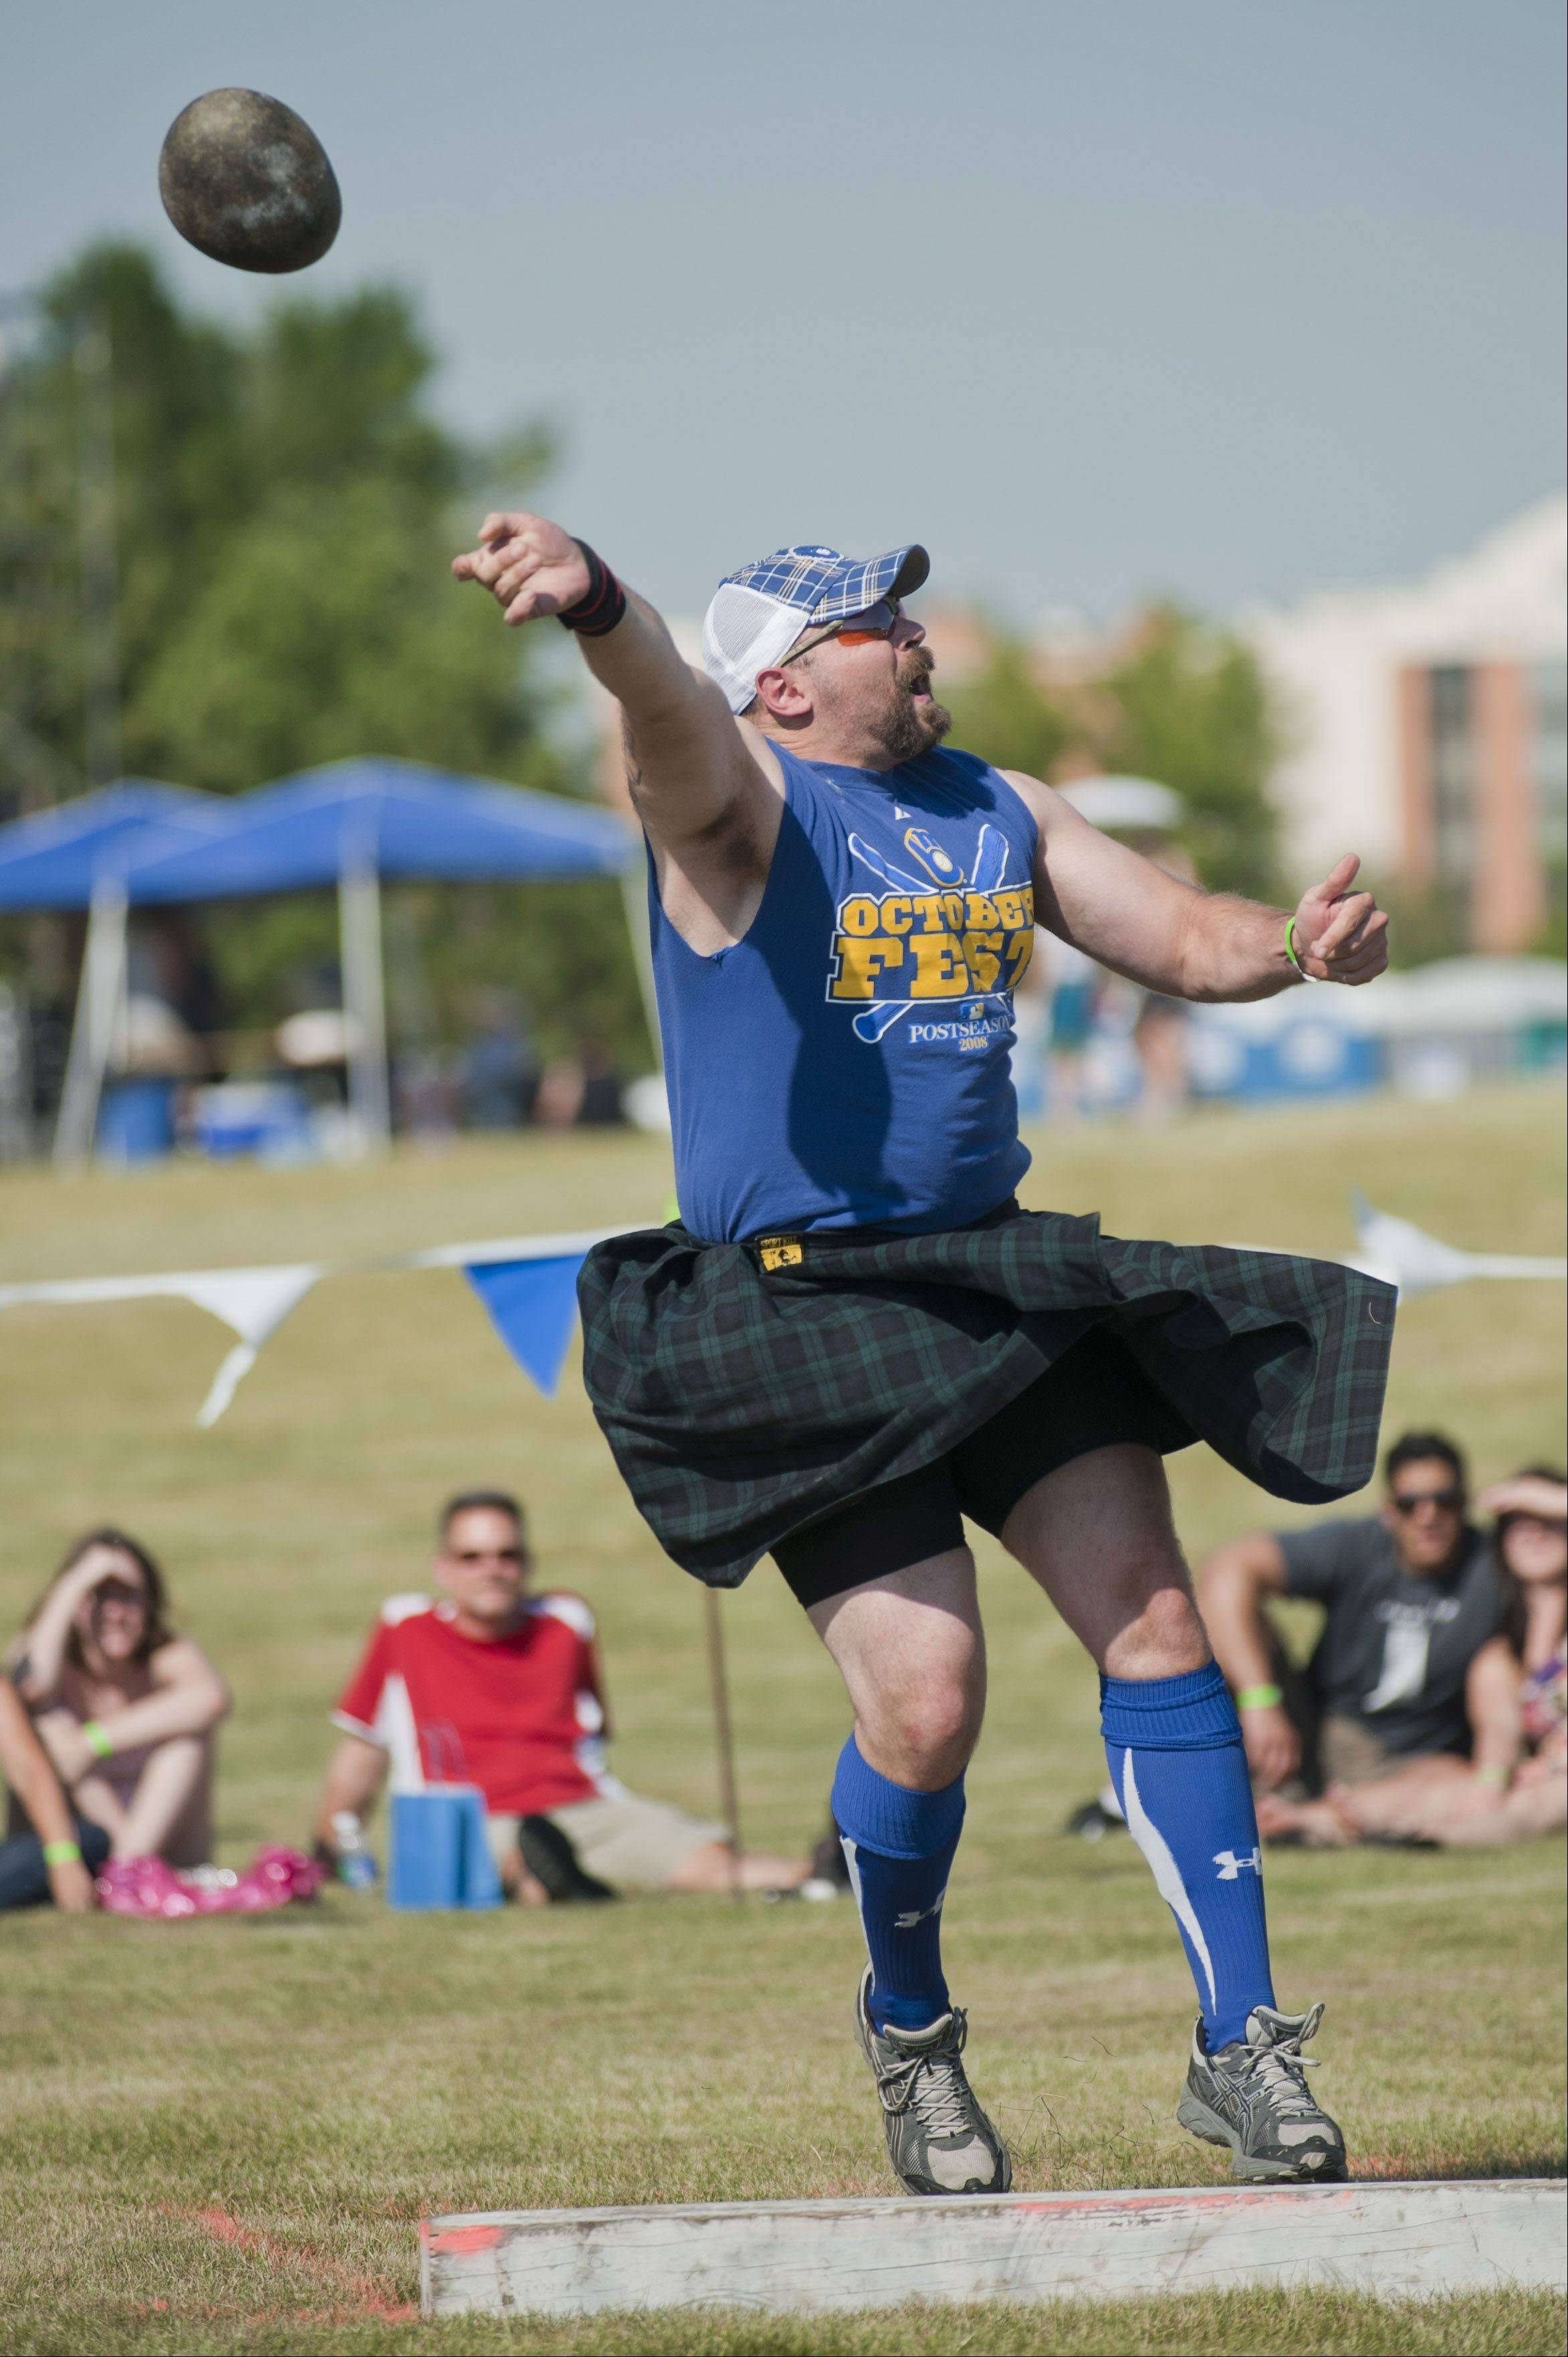 Luke Hilgers from Stevens Point Wisconsin, heaves a 28 pound stone during the heavyweight athletic exhibition at the annual Illinois St. Andrew Society Scottish Festival and Highland Games in Itasca on Friday.